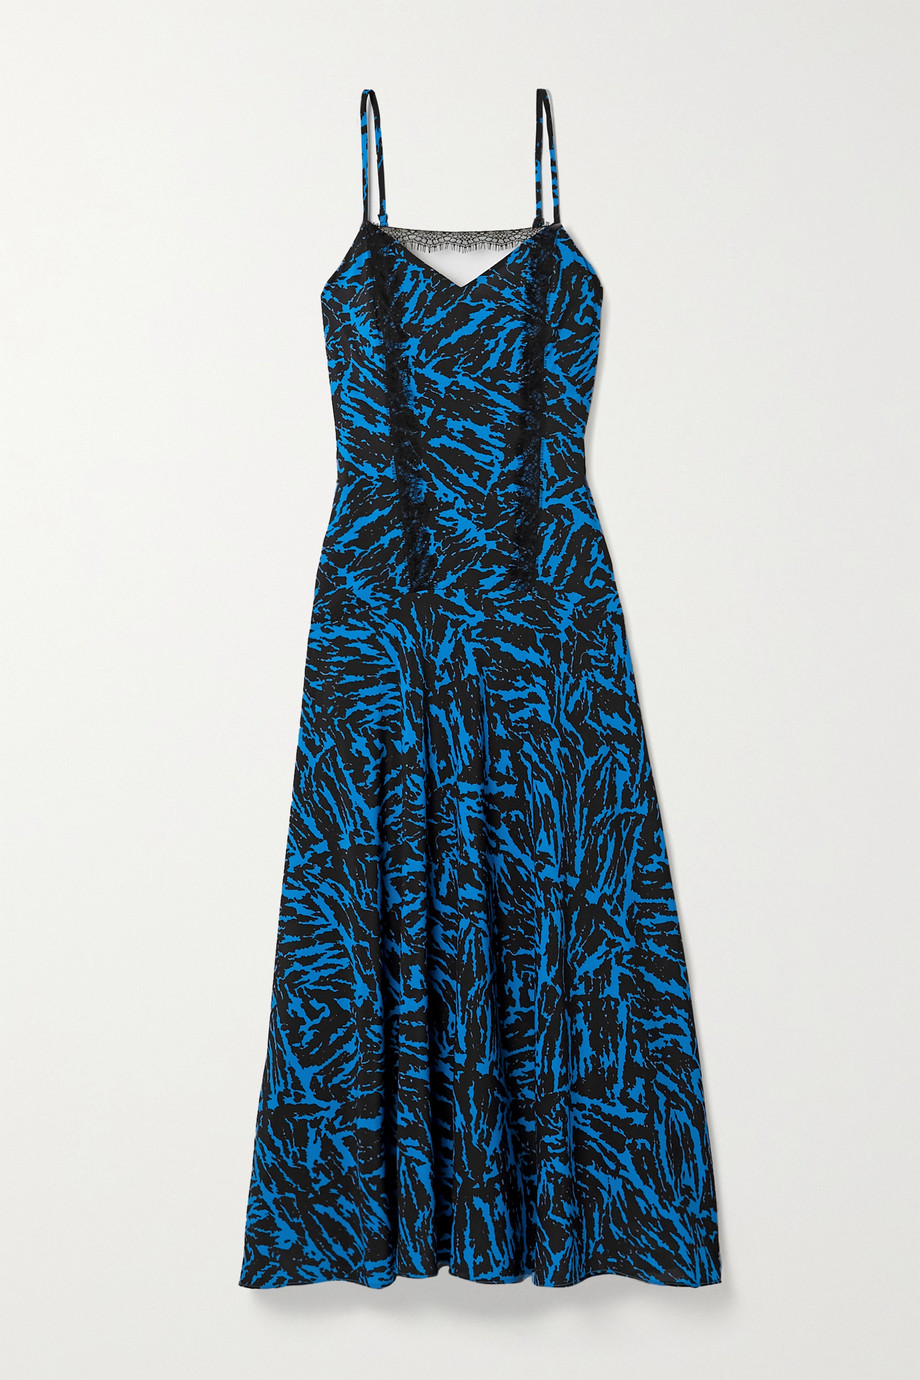 Jason Wu Pleated lace-trimmed zebra-print crepe midi dress